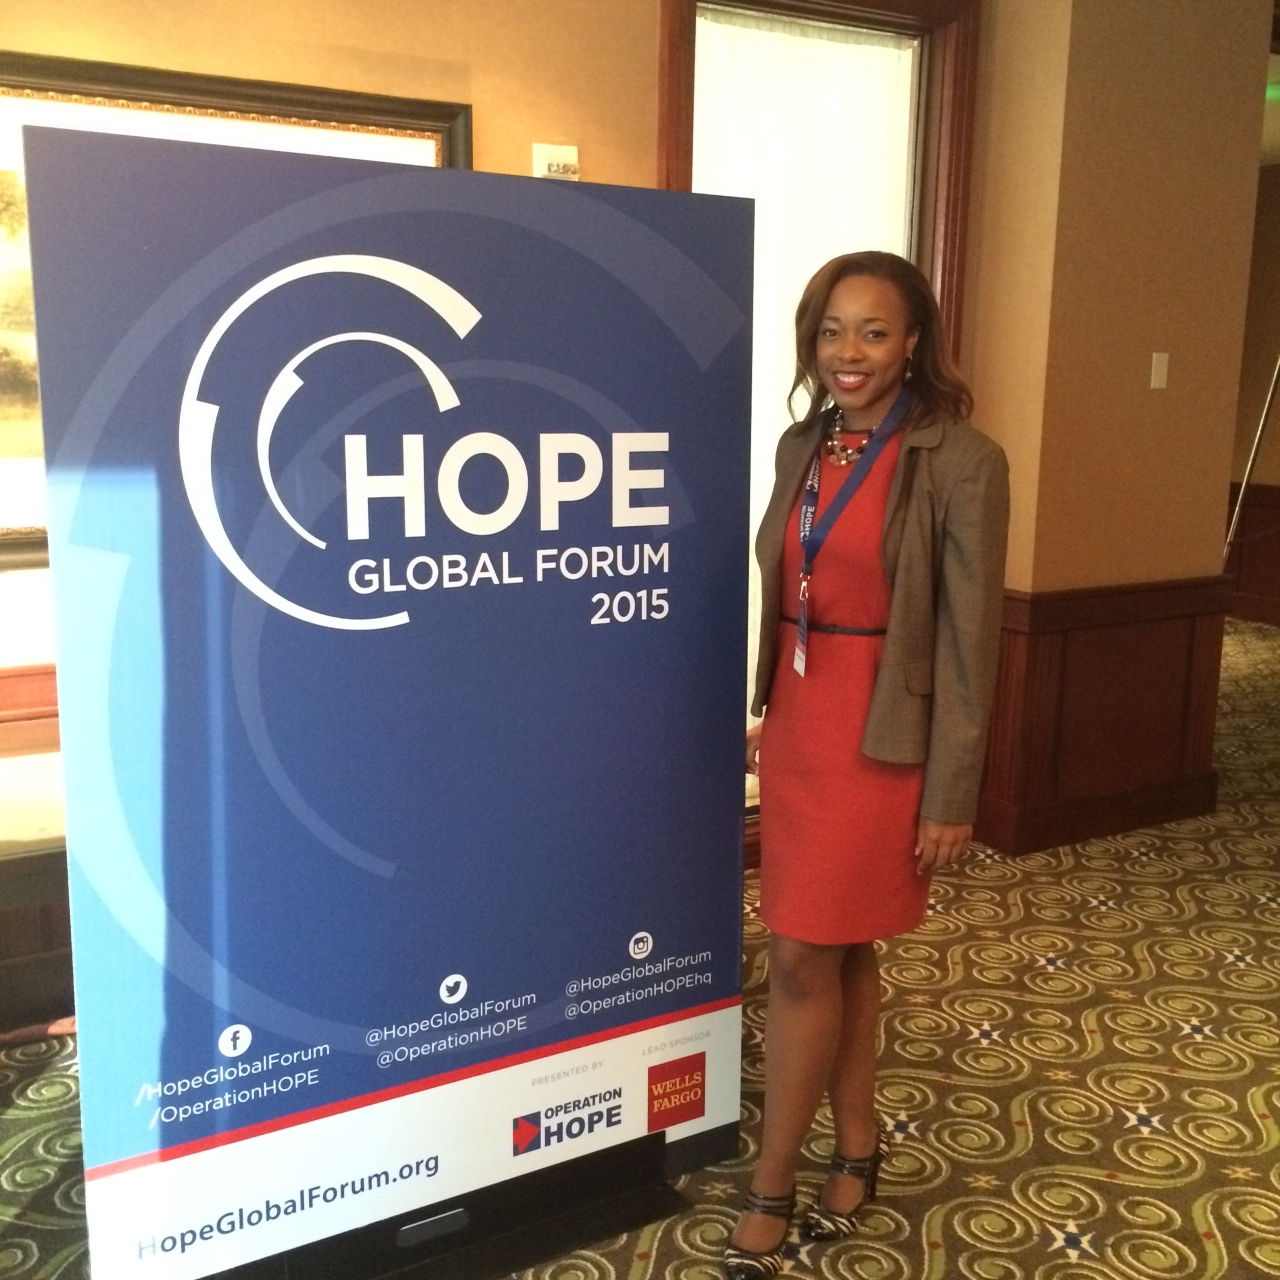 Hope Global Forum